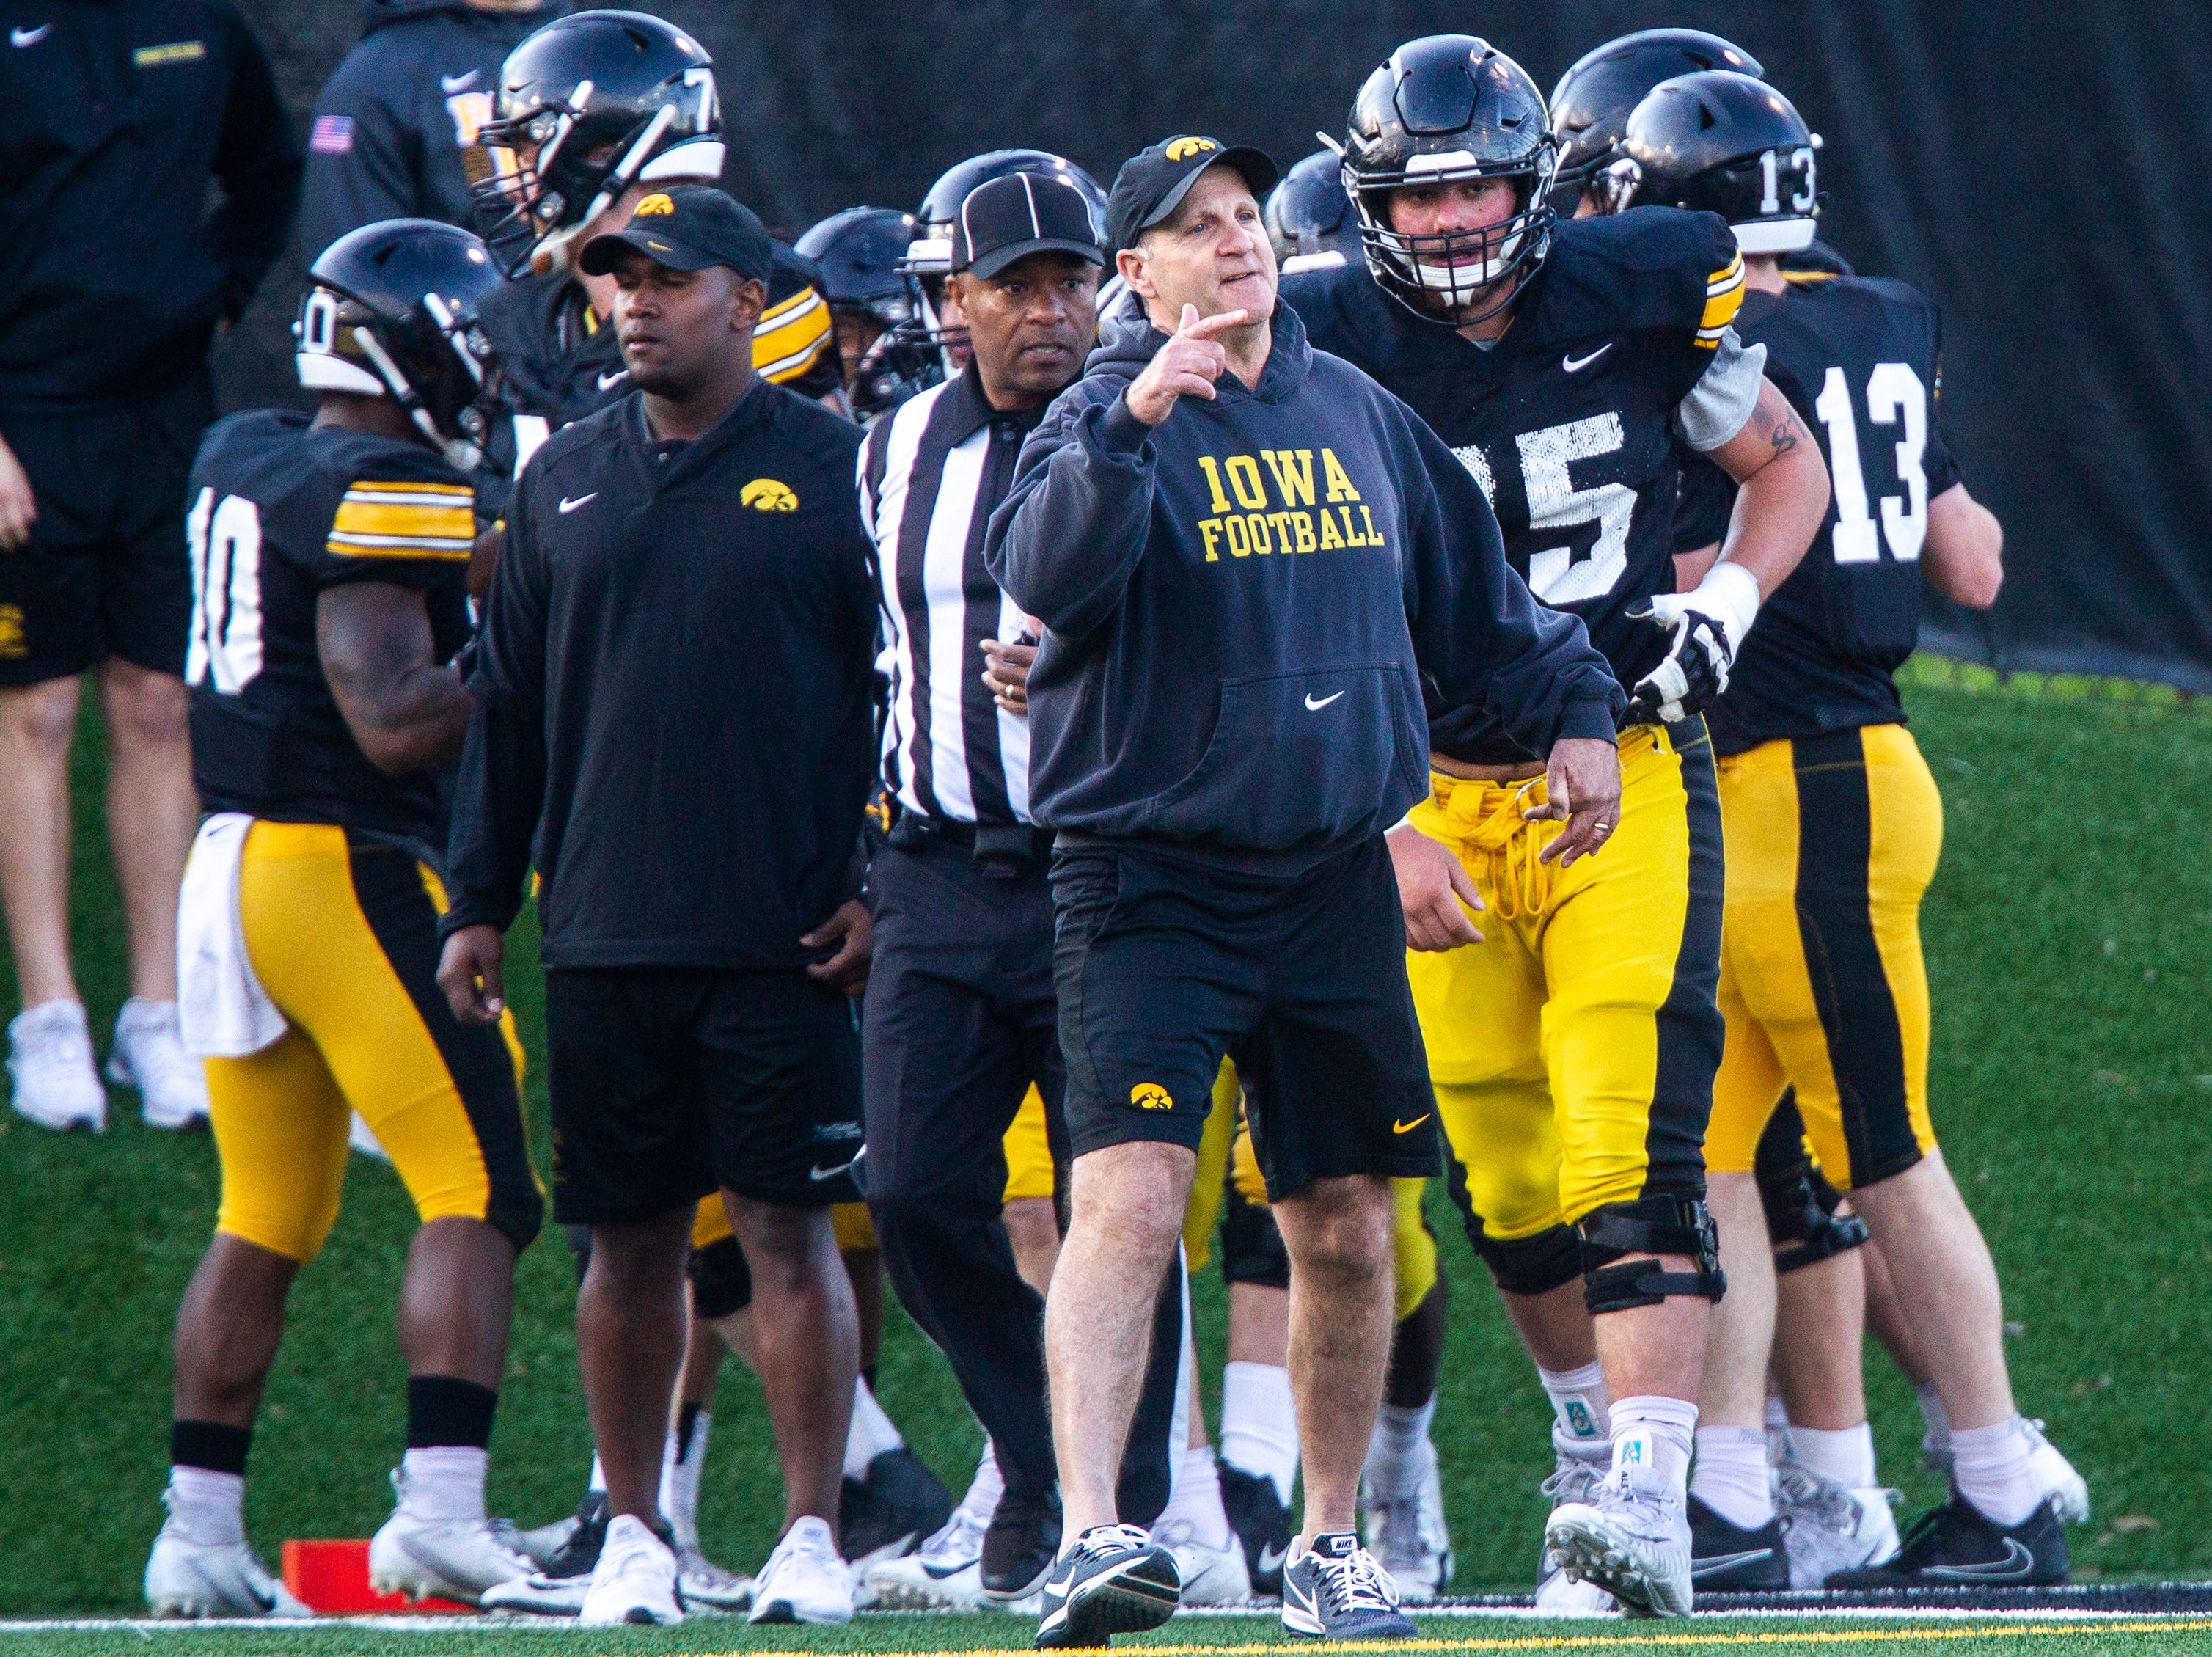 Iowa defensive coordinator Phil Parker calls out to players during the final spring football practice, Friday, April 26, 2019, at the University of Iowa outdoor practice facility in Iowa City, Iowa.